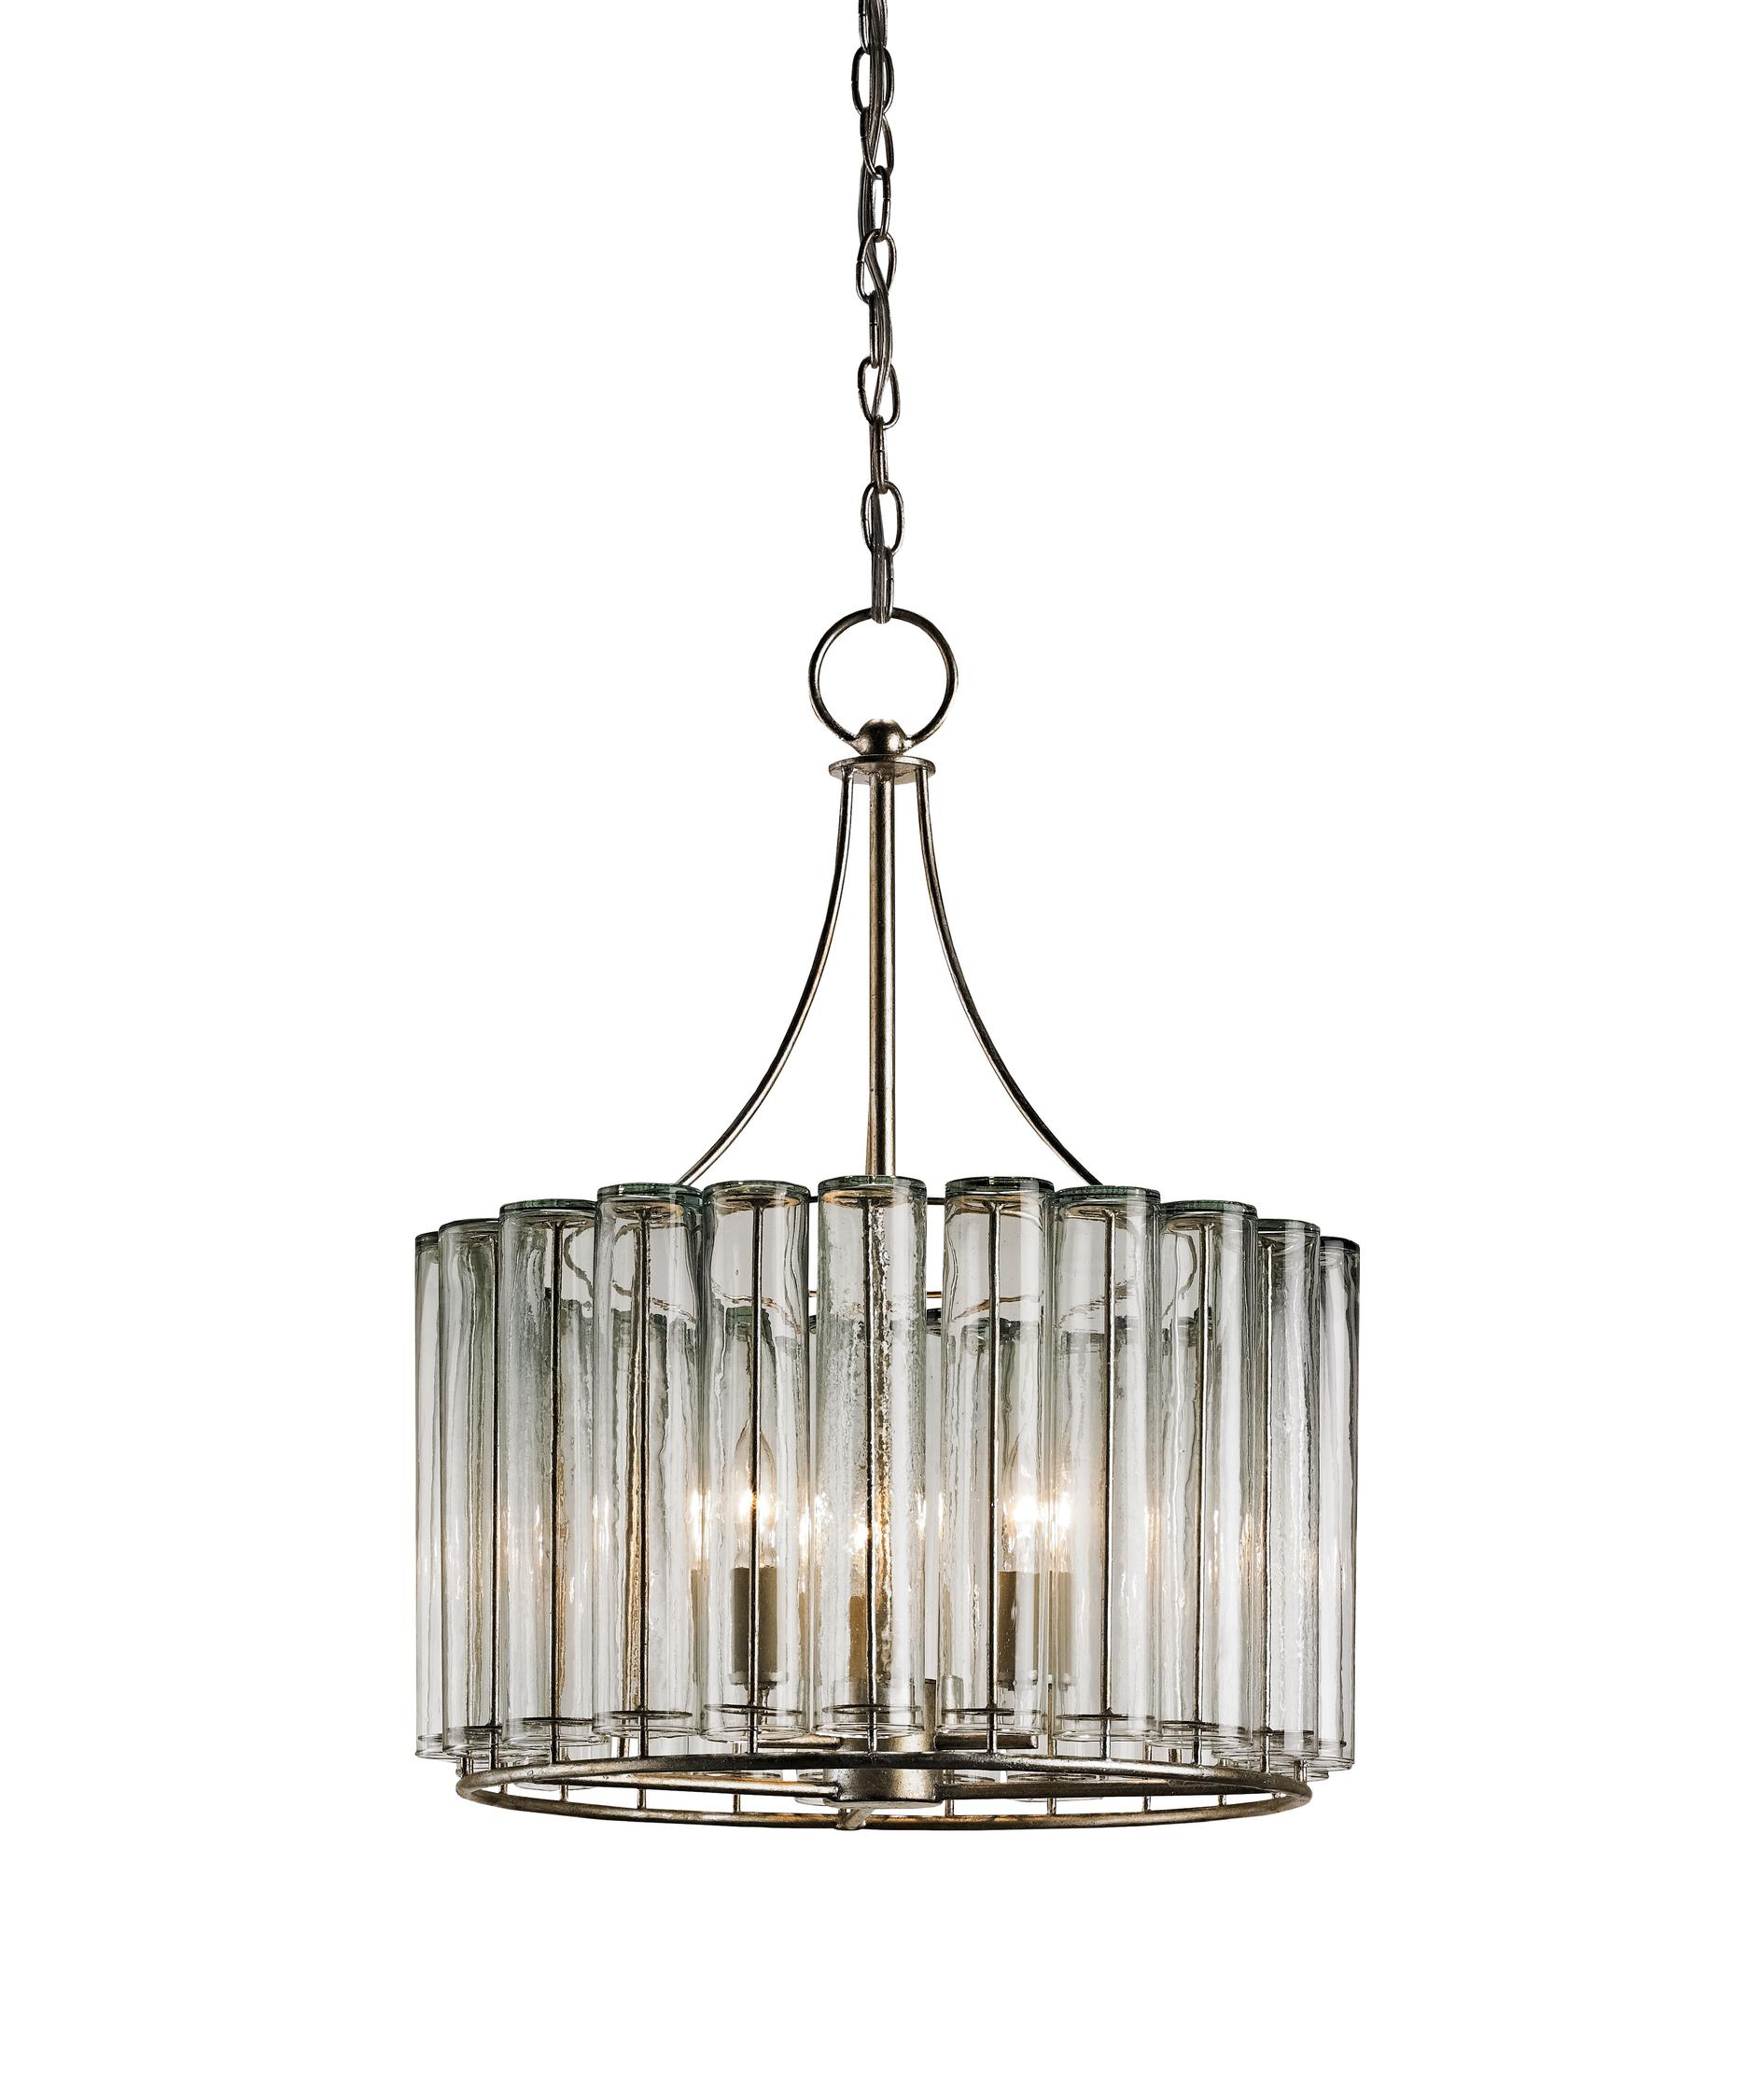 Currey and Company Bevilacqua 18 Inch Wide 3 Light Mini Chandelier – Currey and Company Lighting Chandeliers